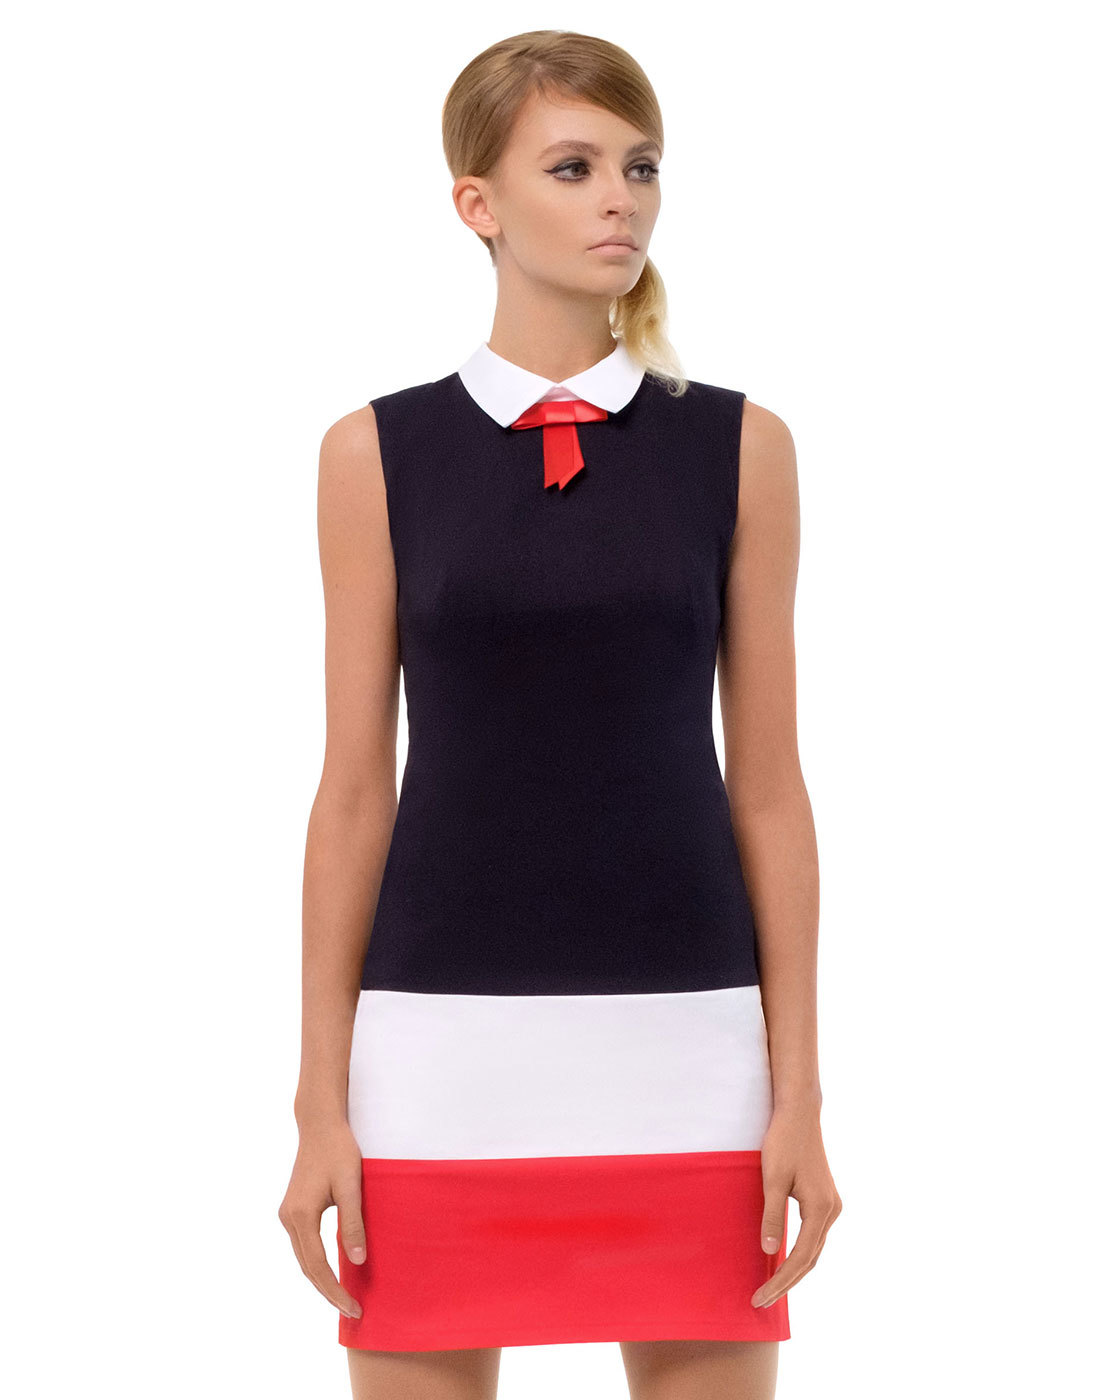 MARMALADE Retro 60s Bow Collar Mod Mini Dress